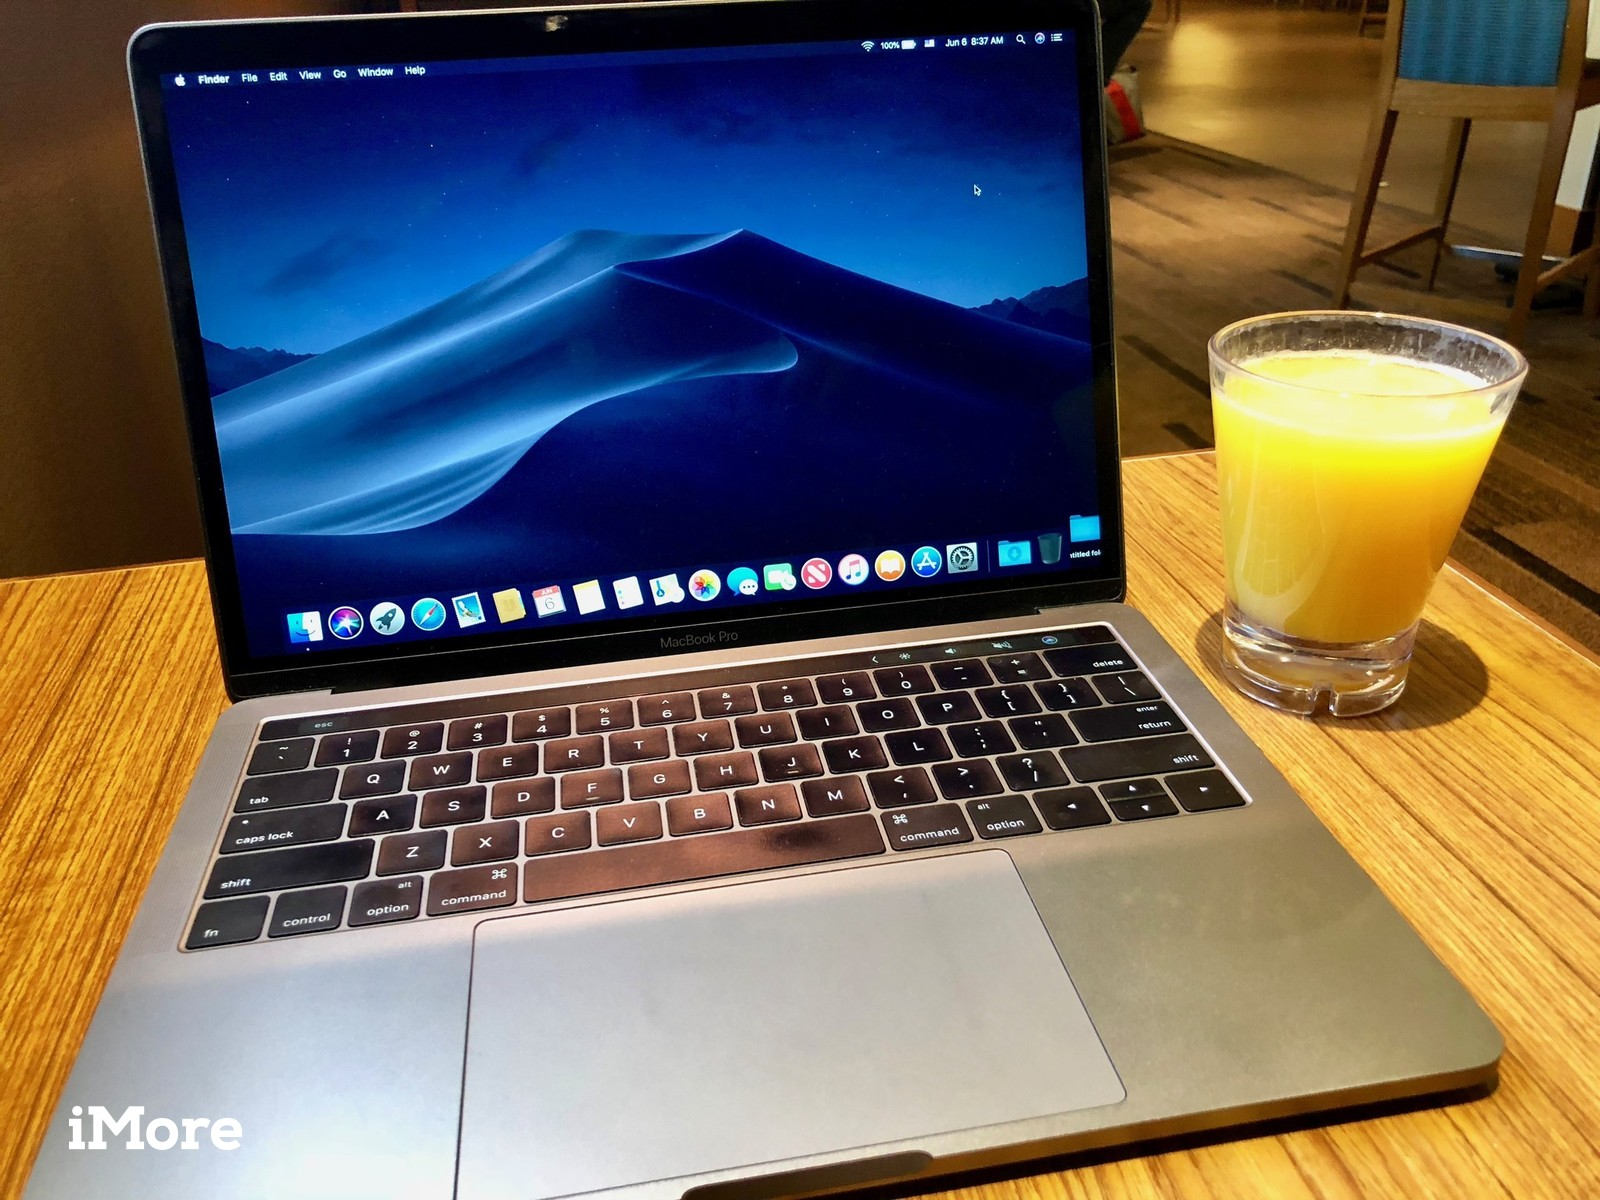 Apple's MacOS Mojave released but with a major security vulnerability